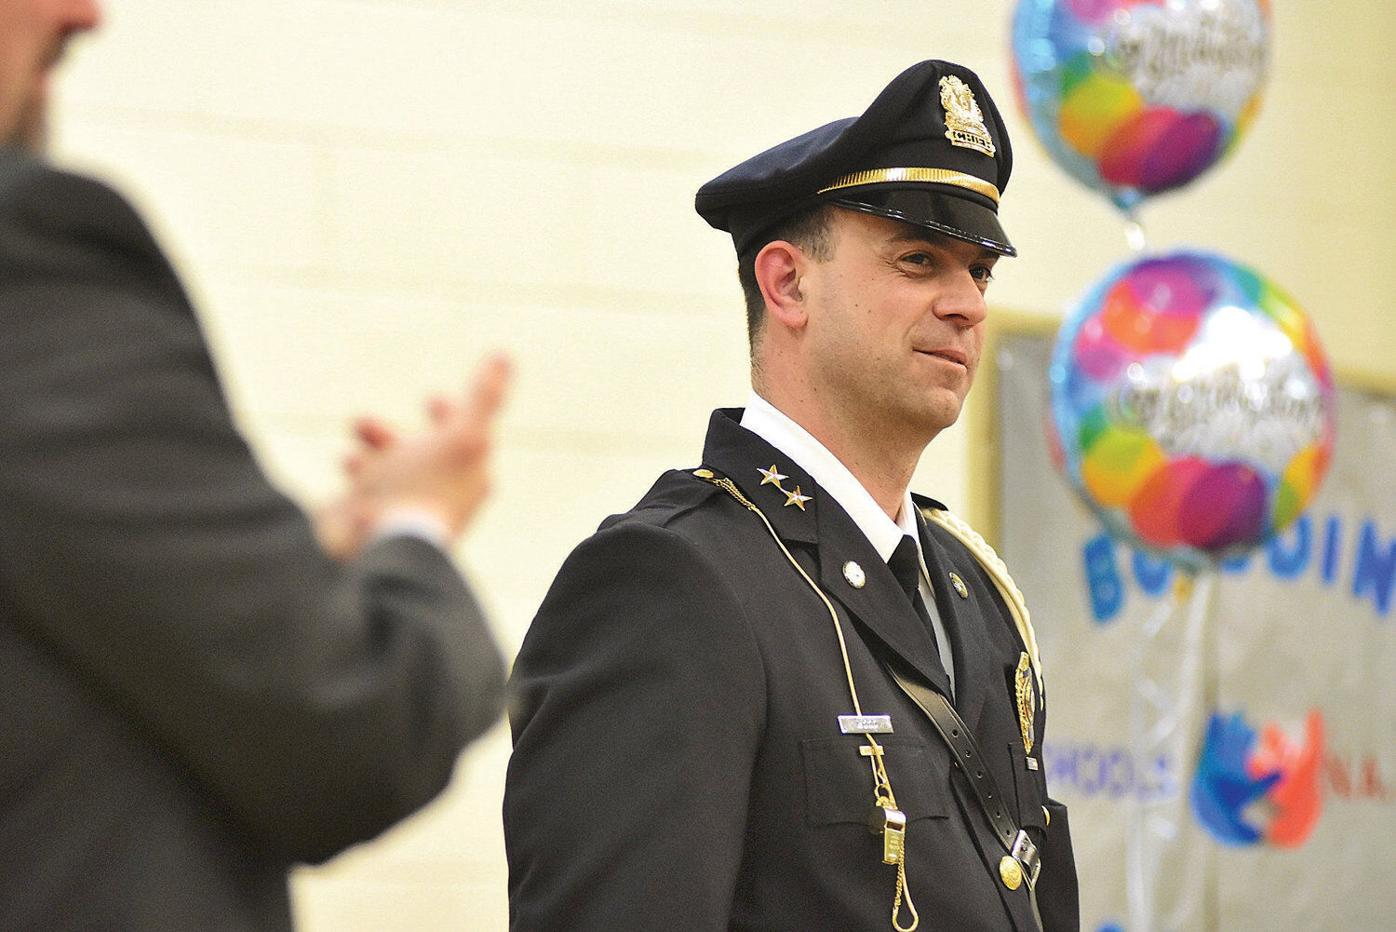 New North Adams police chief calls show of support 'pretty amazing'